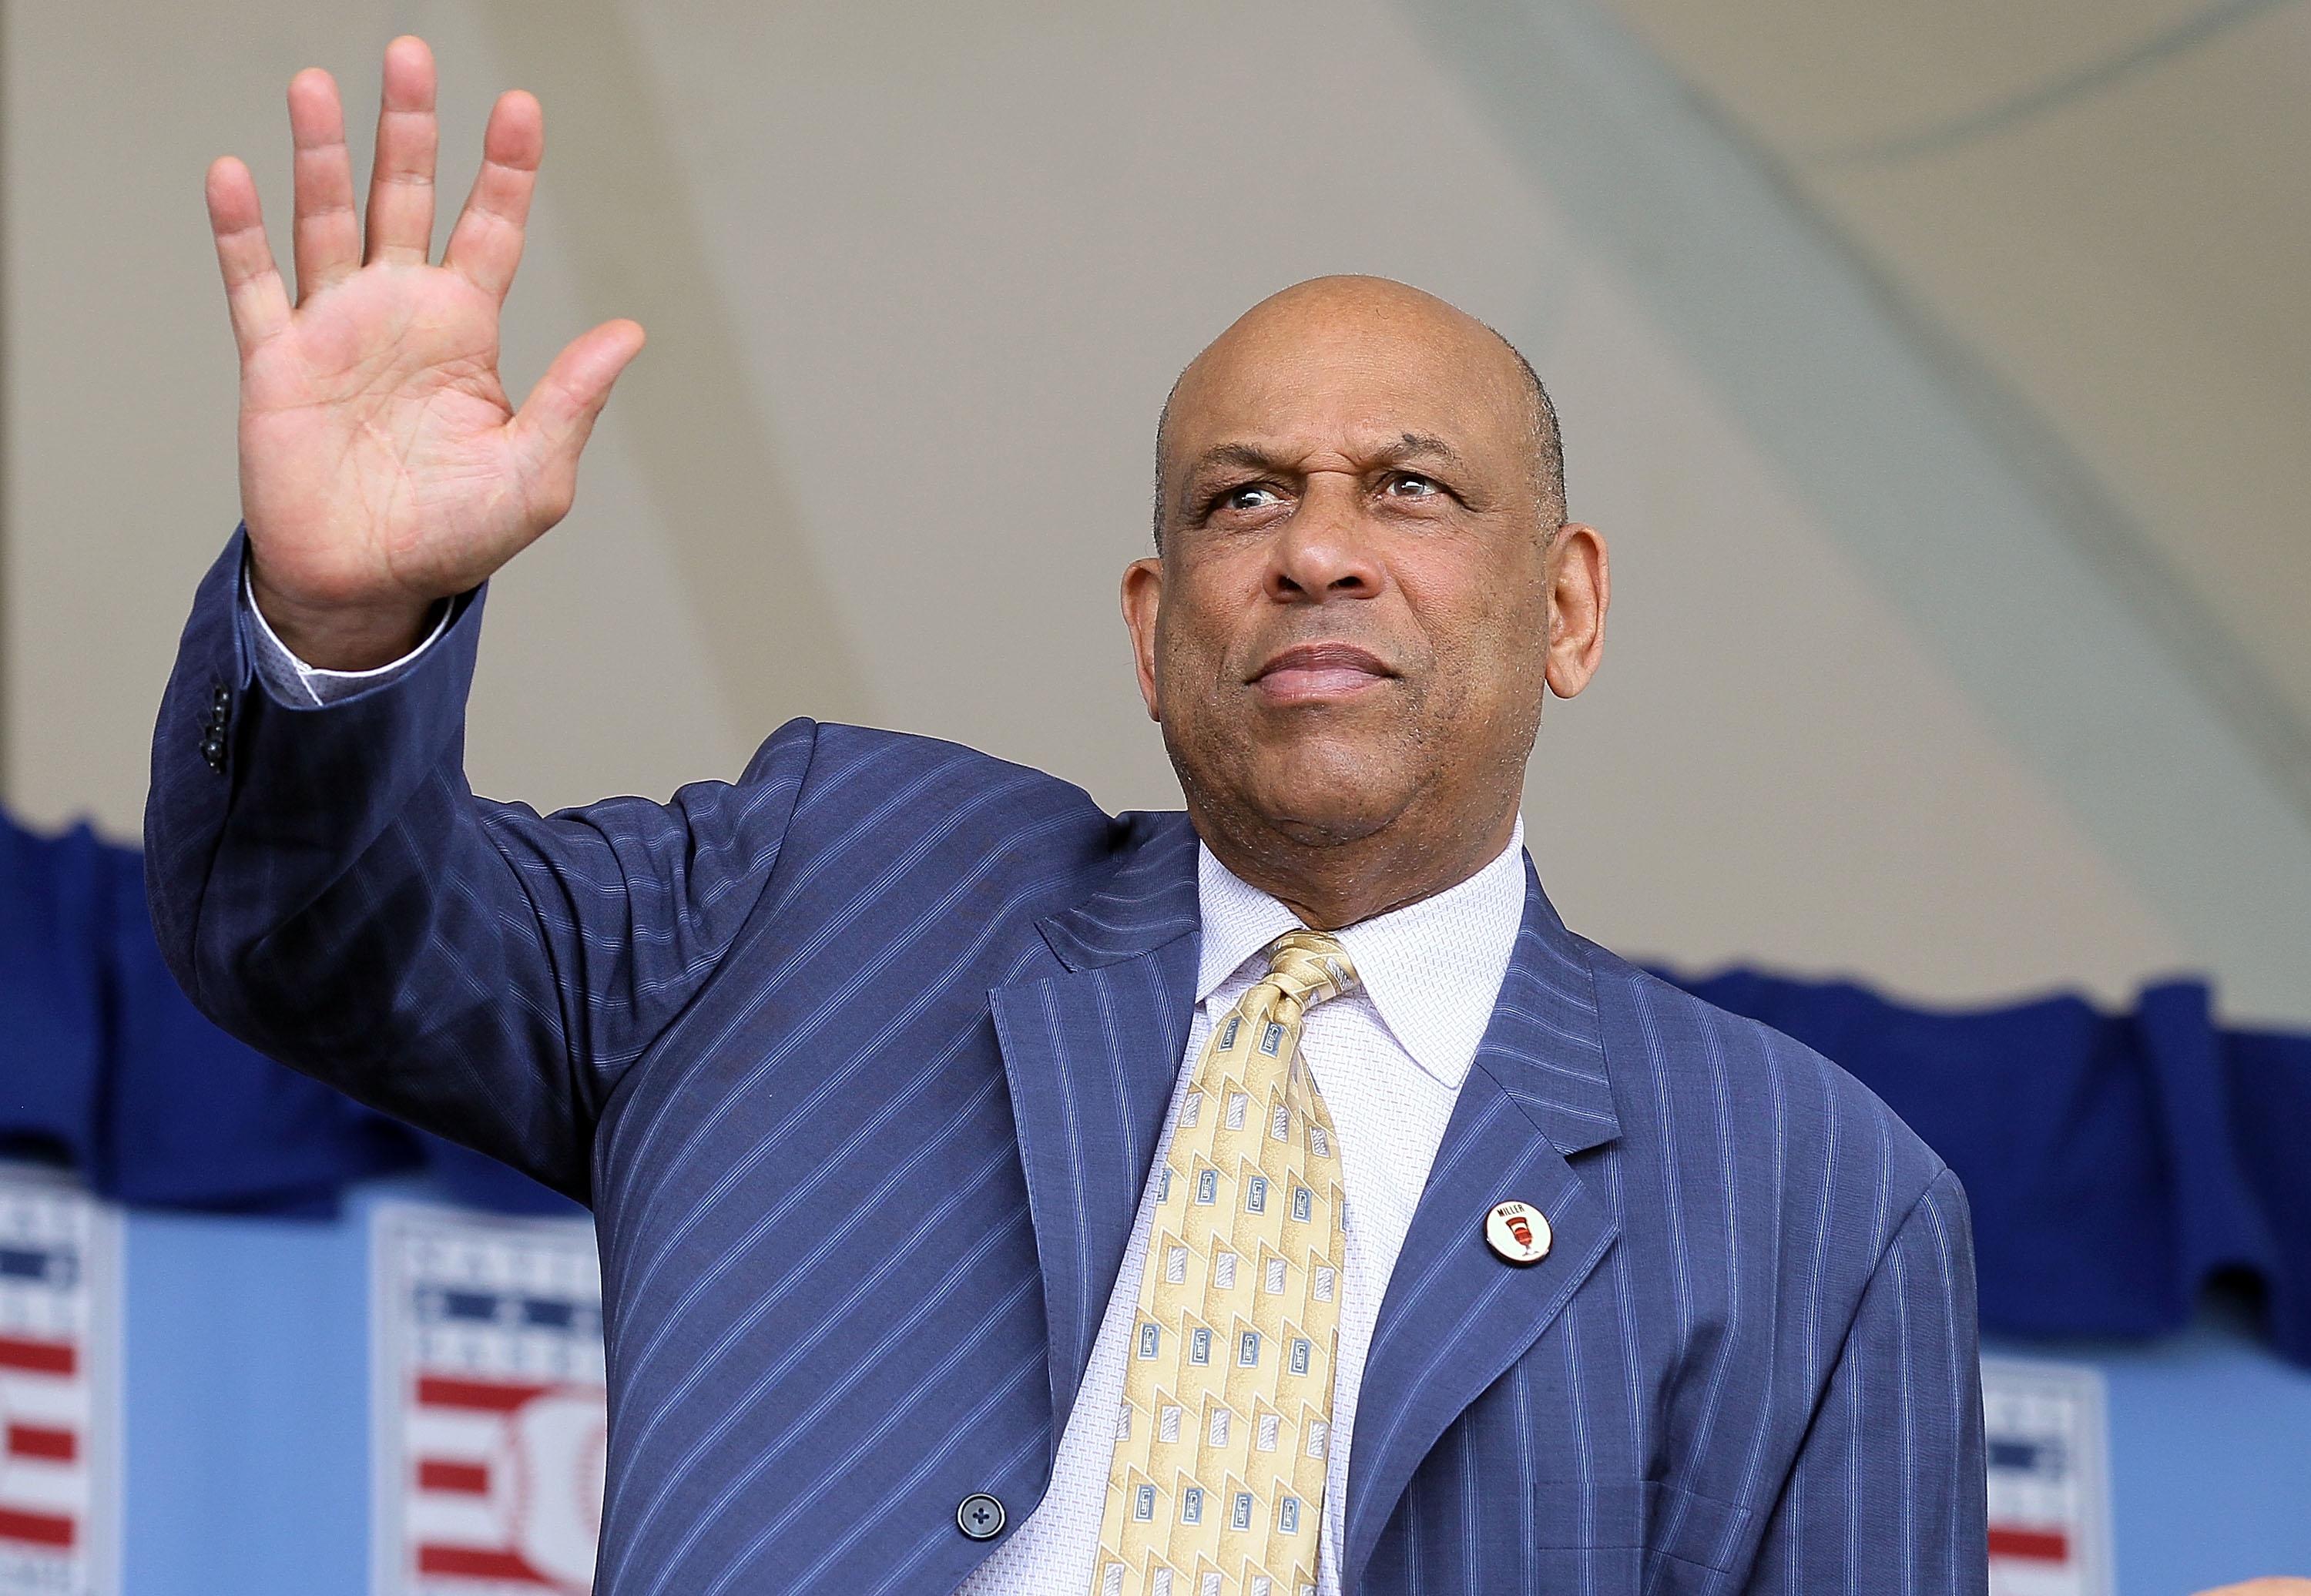 COOPERSTOWN, NY - JULY 25:  Hall of Famer Orlando Cepeda attends the Baseball Hall of Fame induction ceremony at Clark Sports Center on July 25, 20010 in Cooperstown, New York.  (Photo by Jim McIsaac/Getty Images)